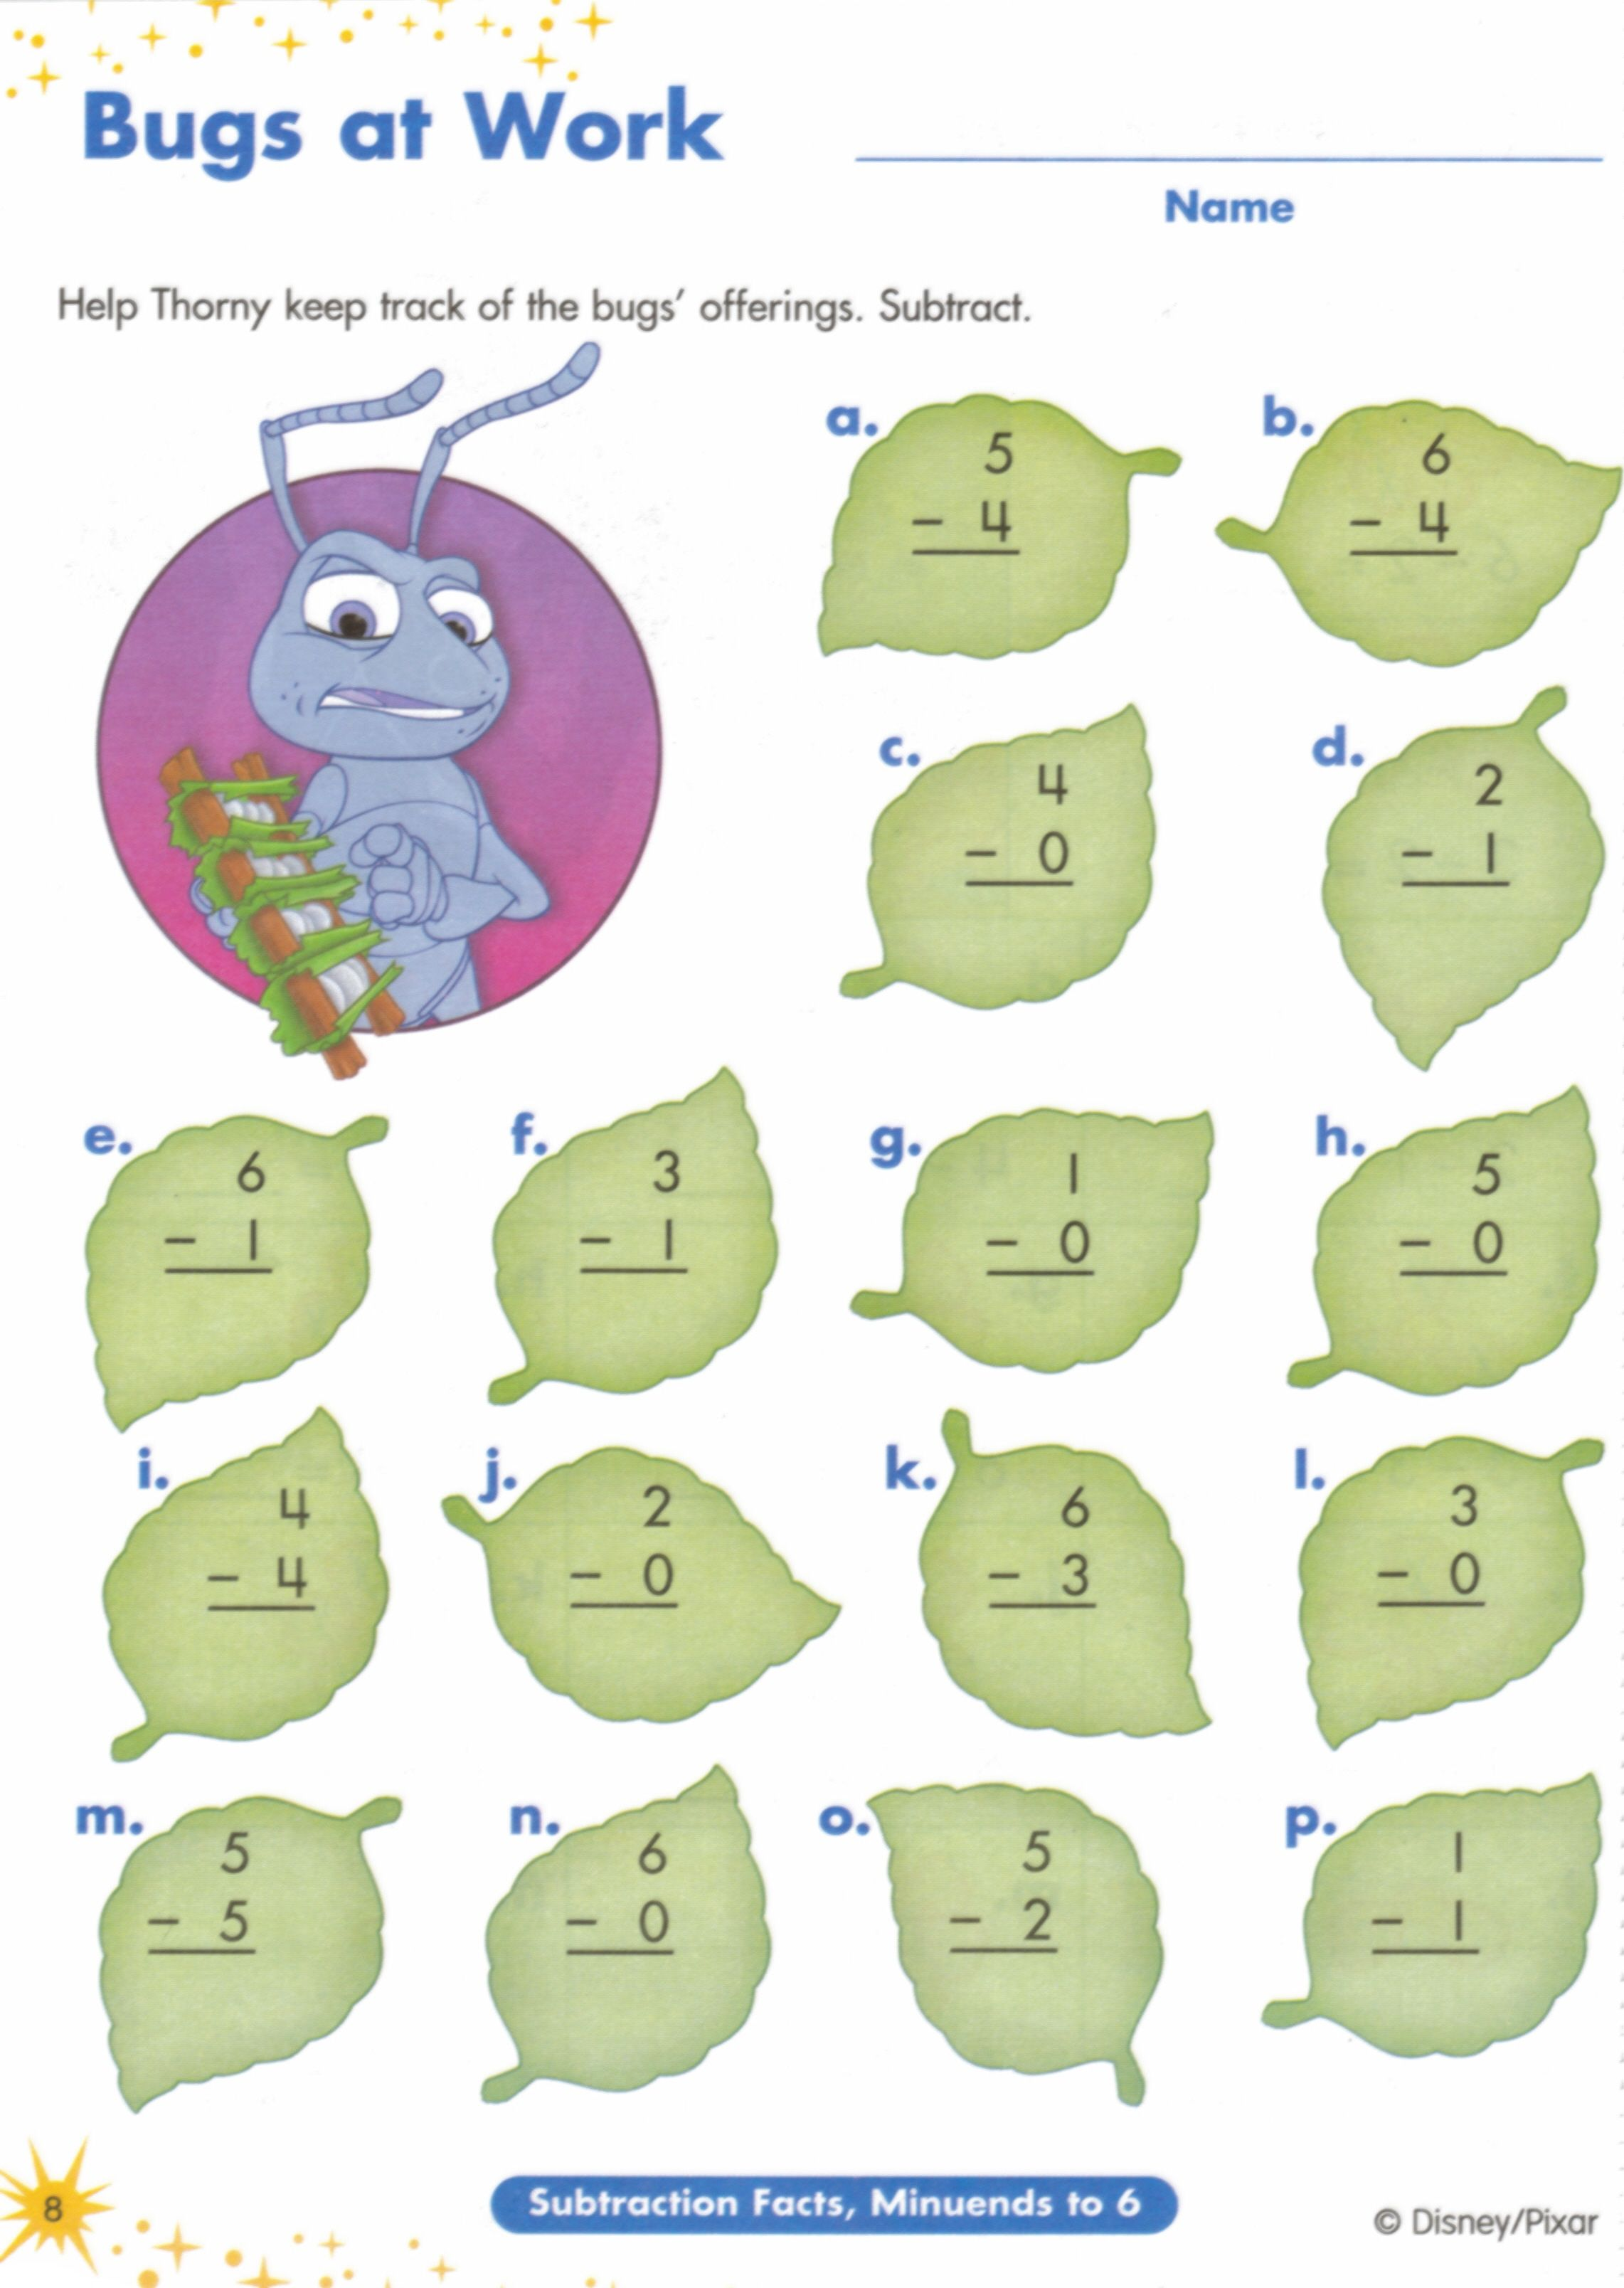 Proatmealus  Marvelous  Images About Worksheets On Pinterest  Fun Facts For Kids  With Interesting  Images About Worksheets On Pinterest  Fun Facts For Kids Earth Day Worksheets And Jungles With Delectable Maths Worksheets For Grade  On Fractions Also Free Worksheet On Adjectives In Addition Reading Calendars Worksheets And English Grammar For Grade  Worksheets As Well As Multiplication S Worksheet Additionally Change Mixed Number To Improper Fraction Worksheet From Pinterestcom With Proatmealus  Interesting  Images About Worksheets On Pinterest  Fun Facts For Kids  With Delectable  Images About Worksheets On Pinterest  Fun Facts For Kids Earth Day Worksheets And Jungles And Marvelous Maths Worksheets For Grade  On Fractions Also Free Worksheet On Adjectives In Addition Reading Calendars Worksheets From Pinterestcom